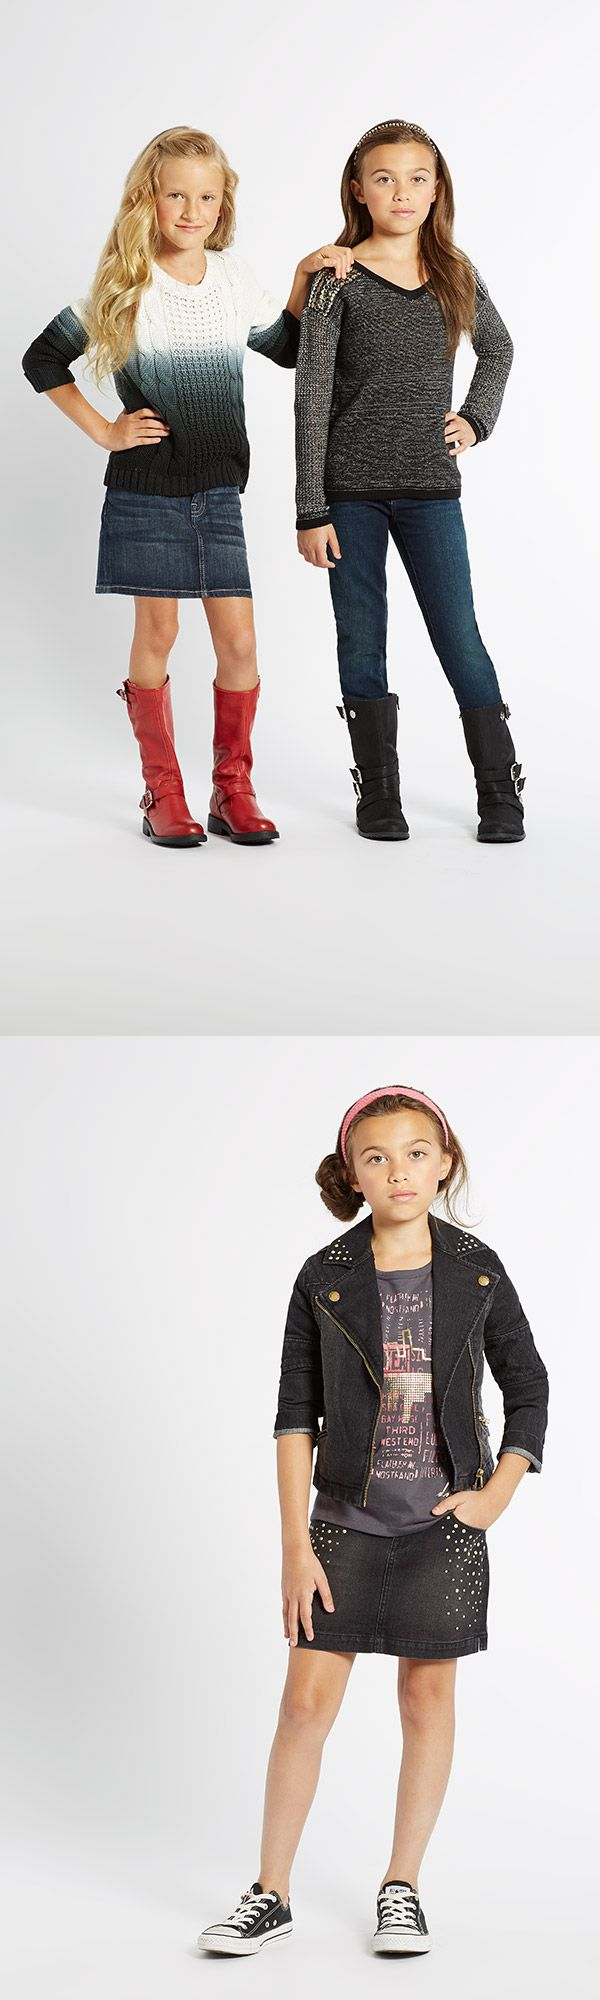 Take your fashion back to school with cute styles from